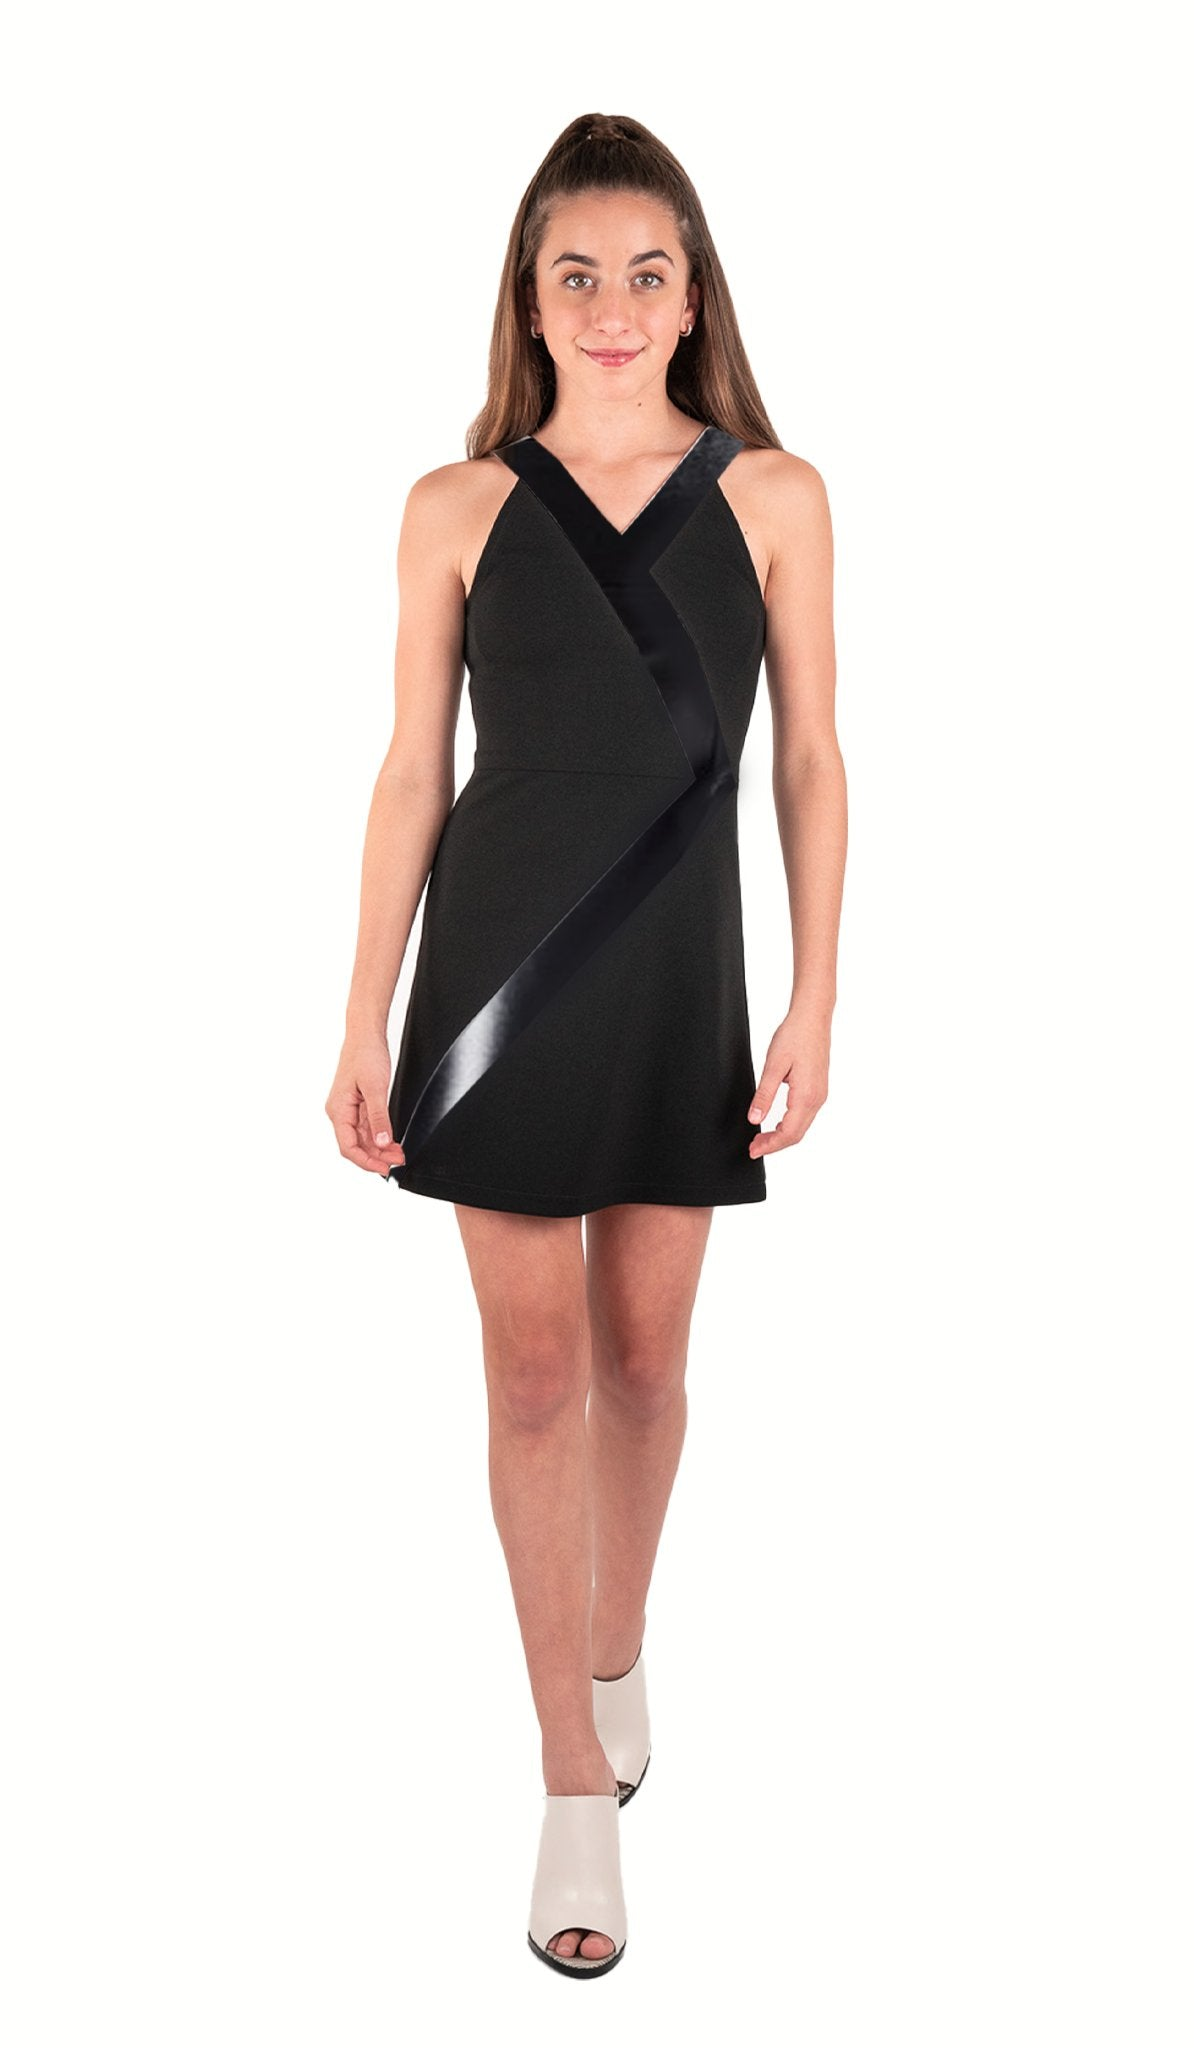 The Tuxedo Dress - Black stretch knit A-line dress with vegan leather trim detail